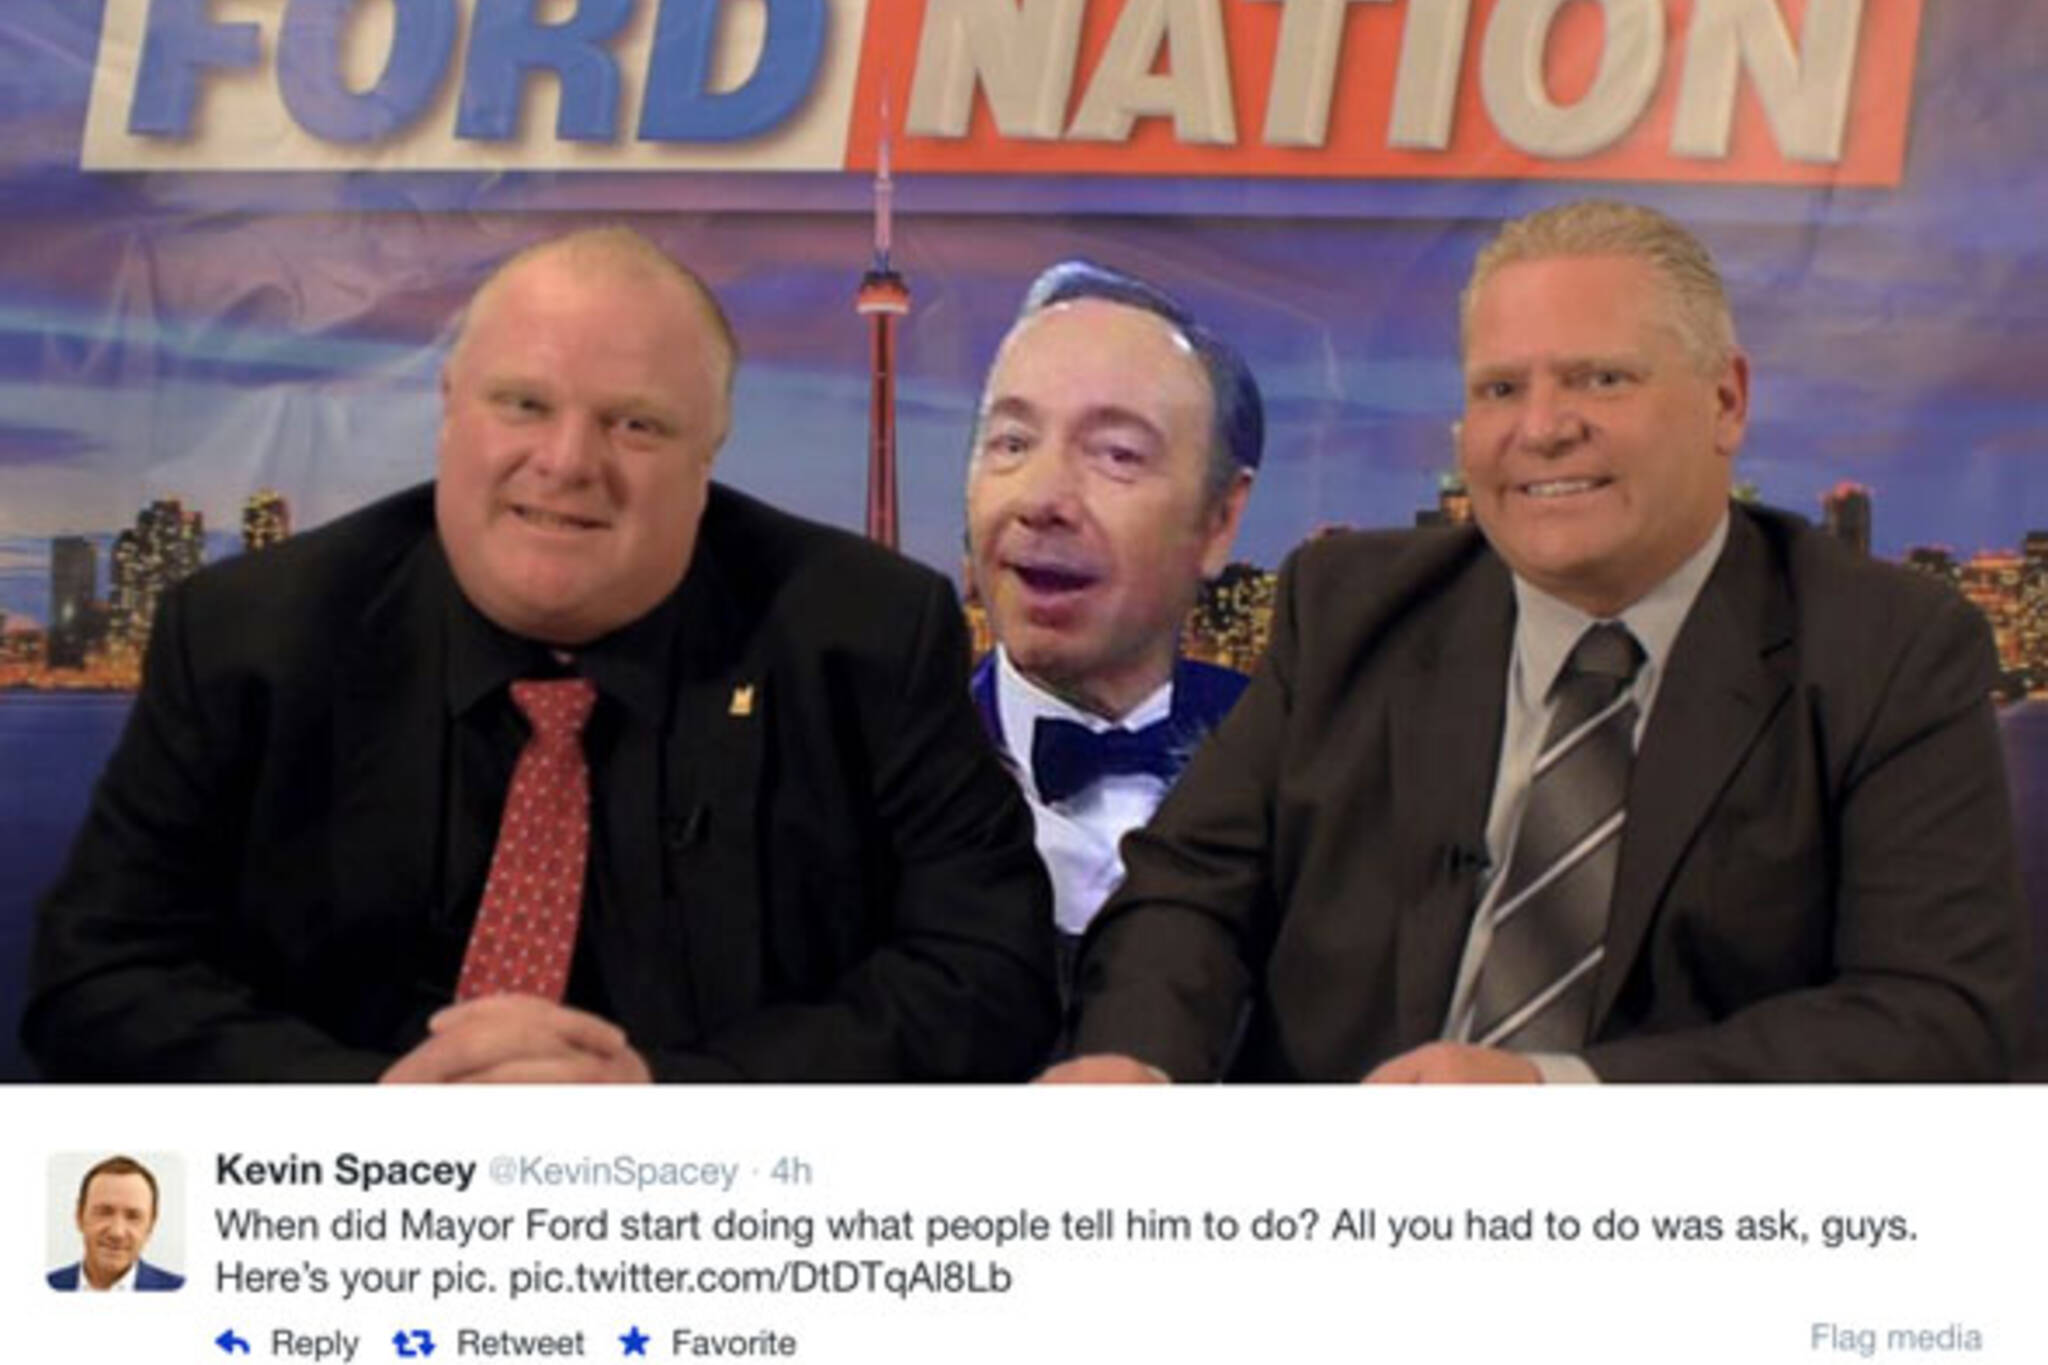 Kevin Spacey Rob Ford